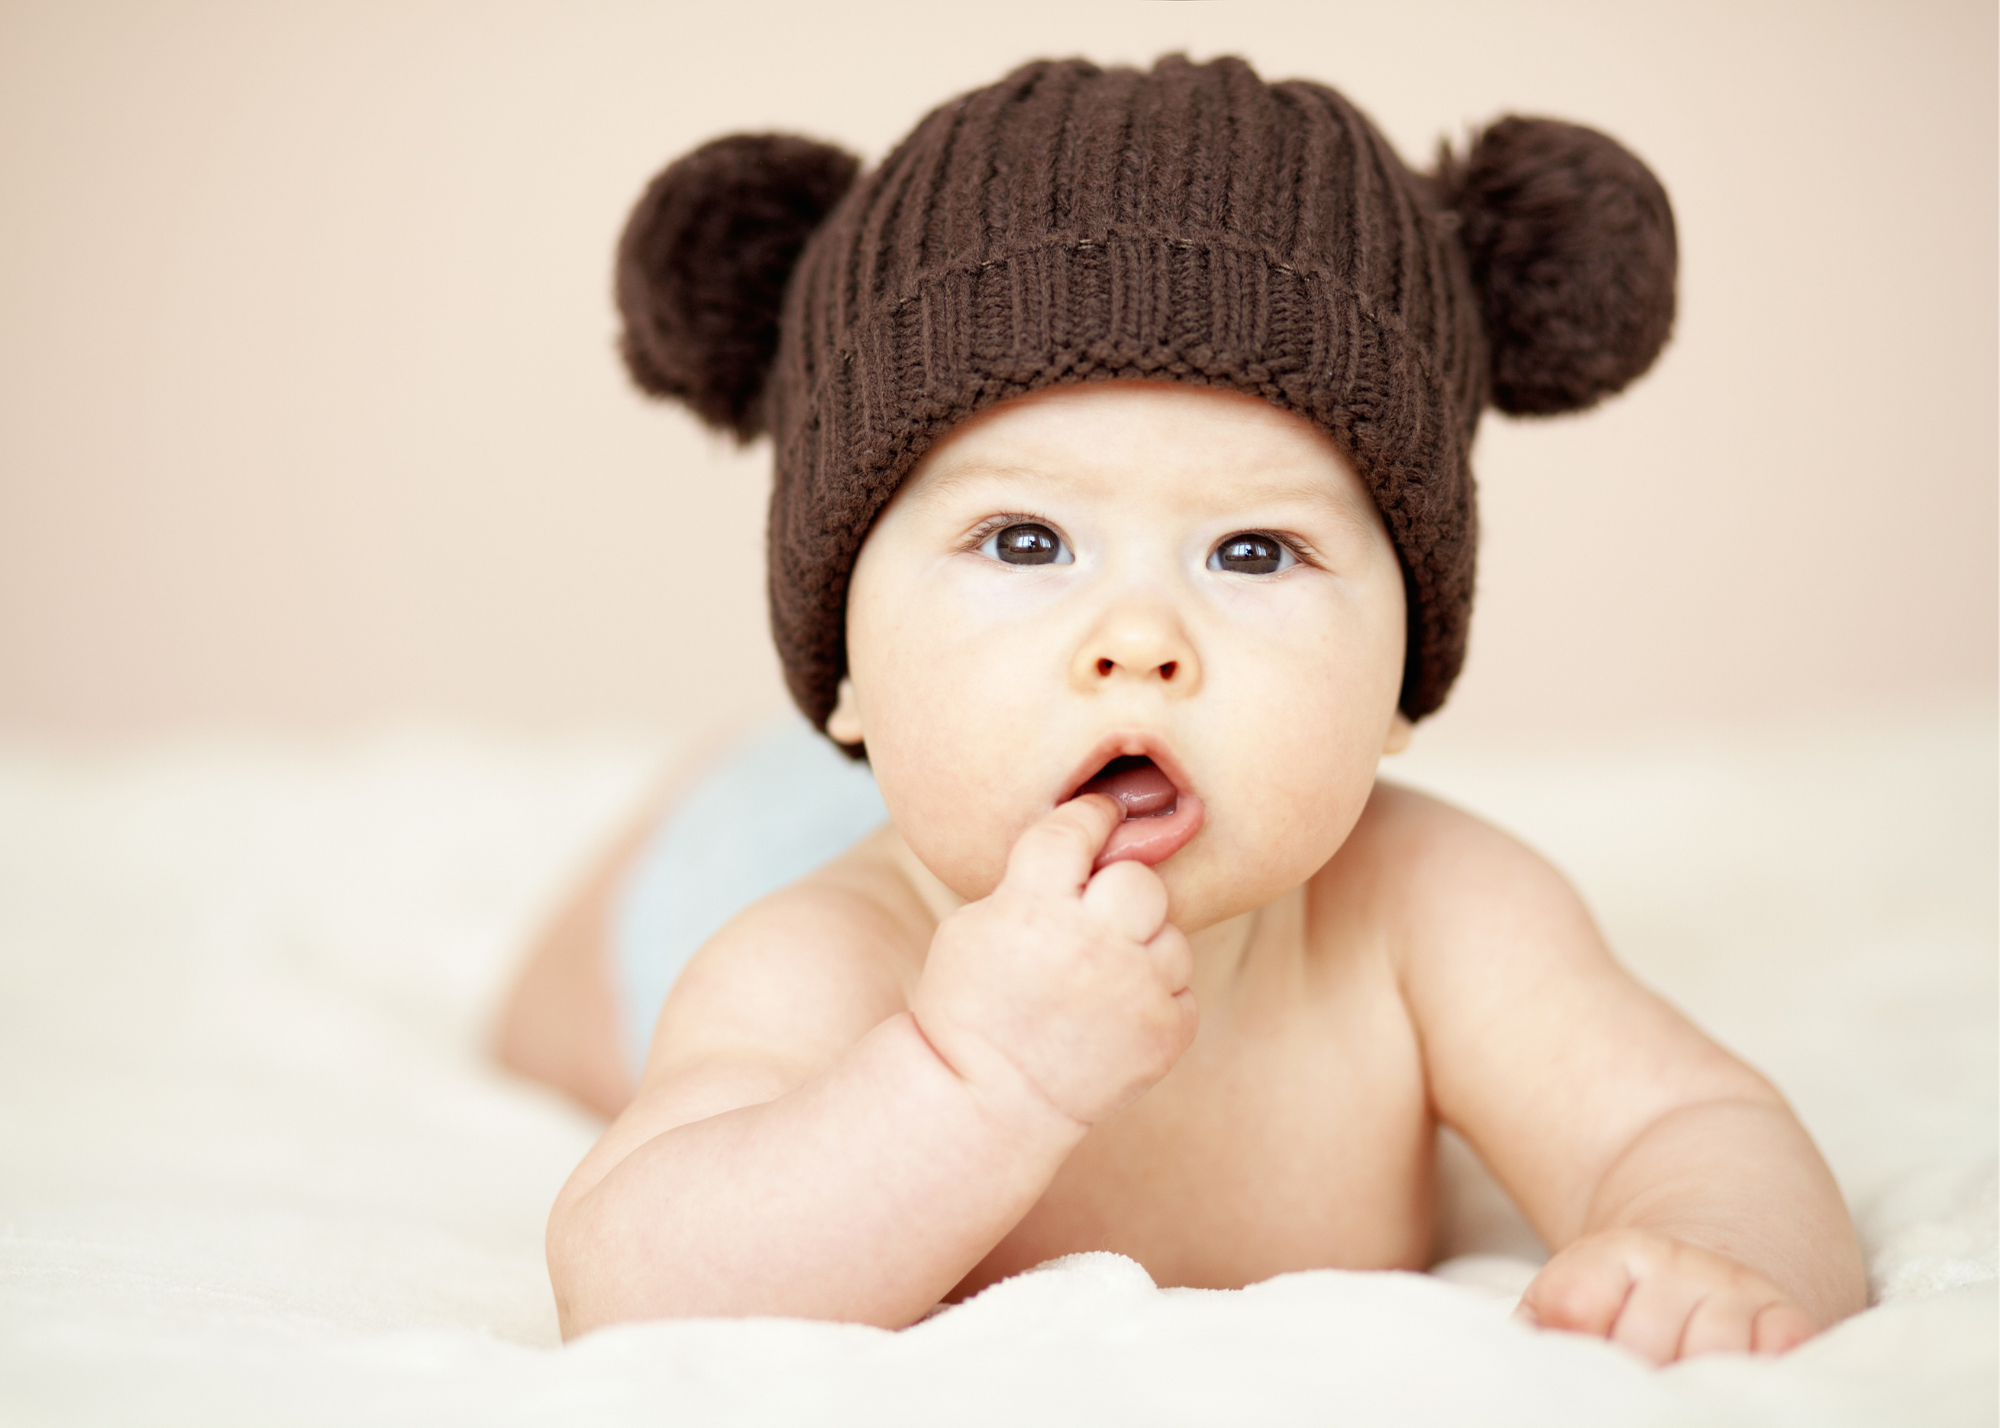 Baby wearing a brown crochet hat lays on a cream blanket and has finger in open mouth.